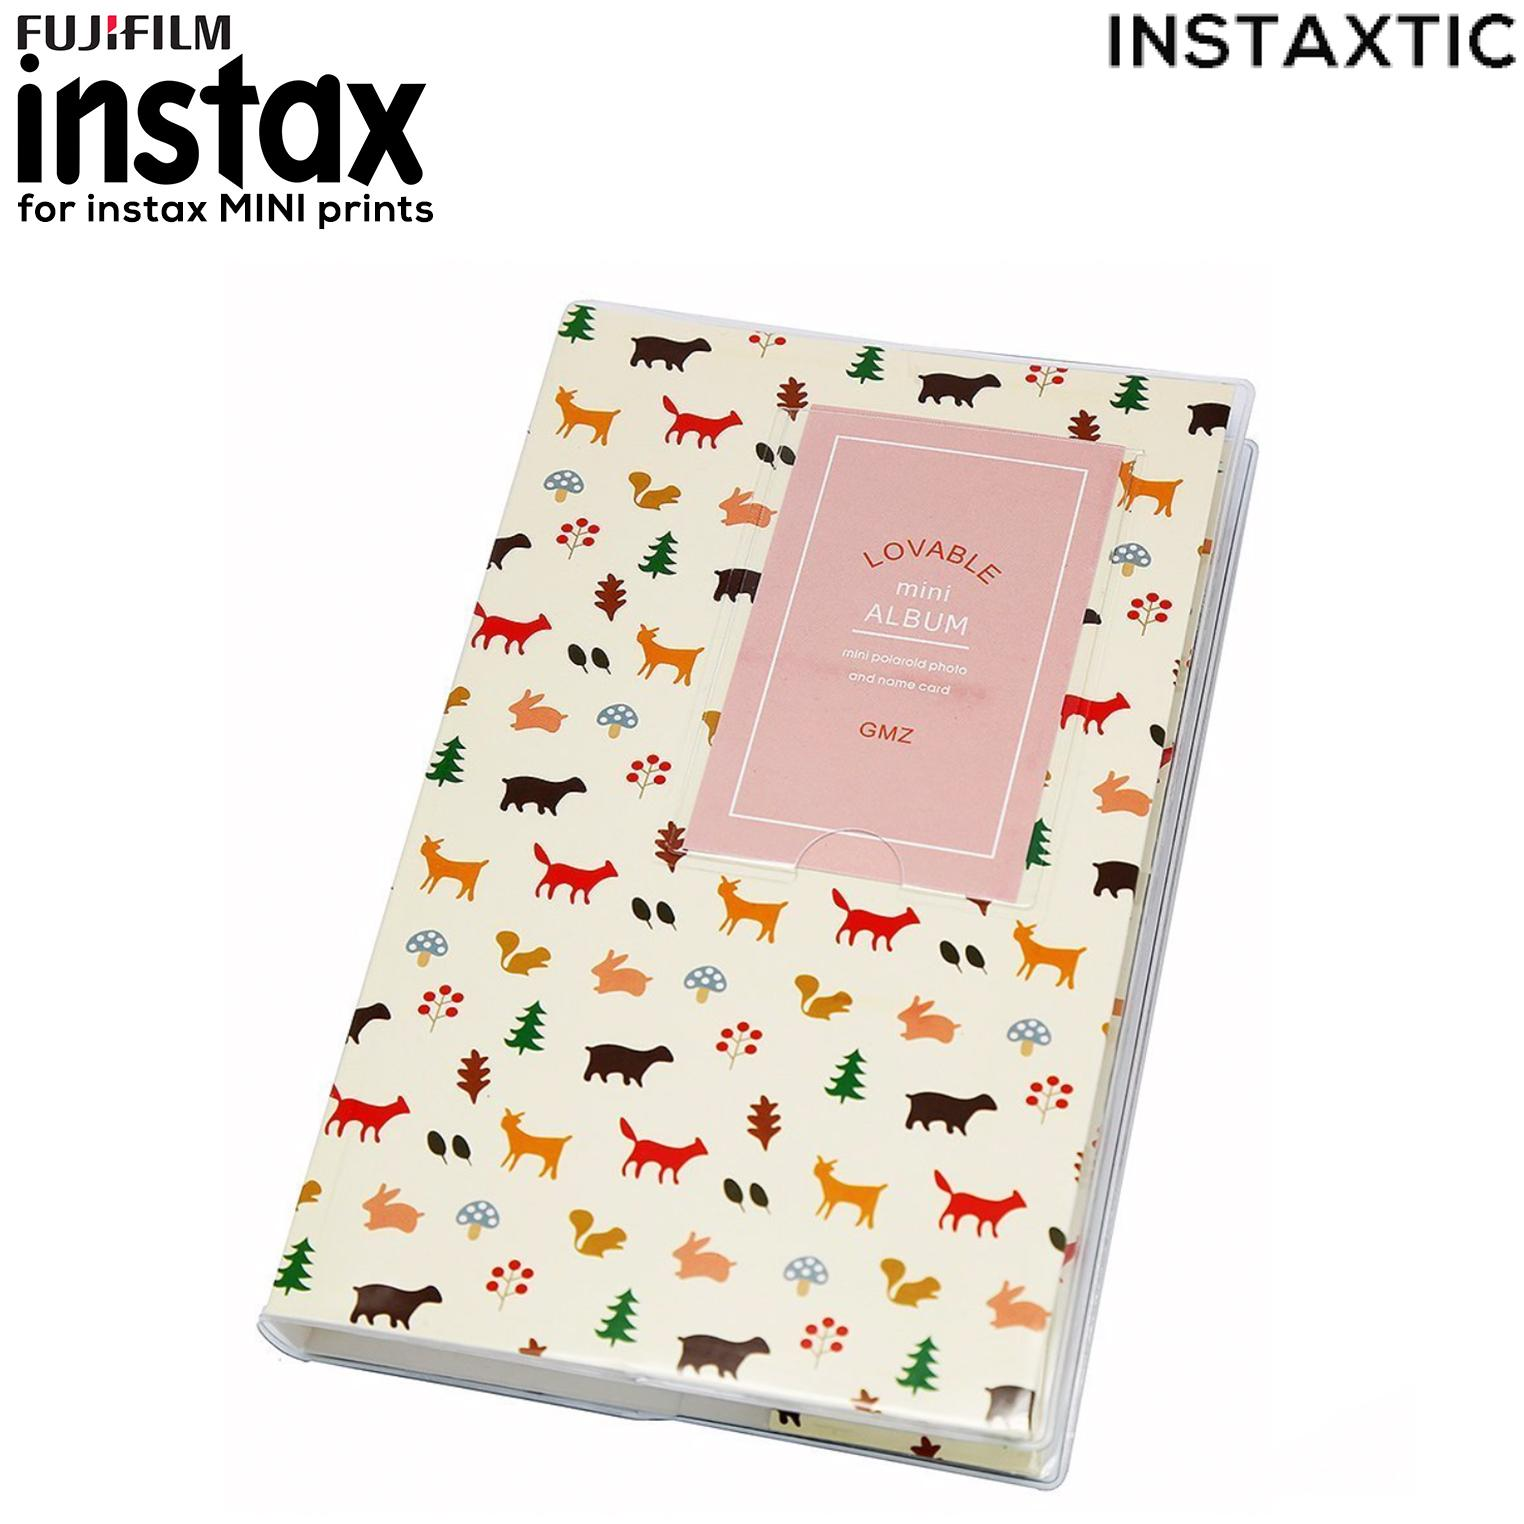 Instaxtic Fujifilm Instax Mini Notebook Style Album (84 slots) for Mini 7/7s/8/8+/9/25/26/50s/70/90/Sp-1/Sp-2